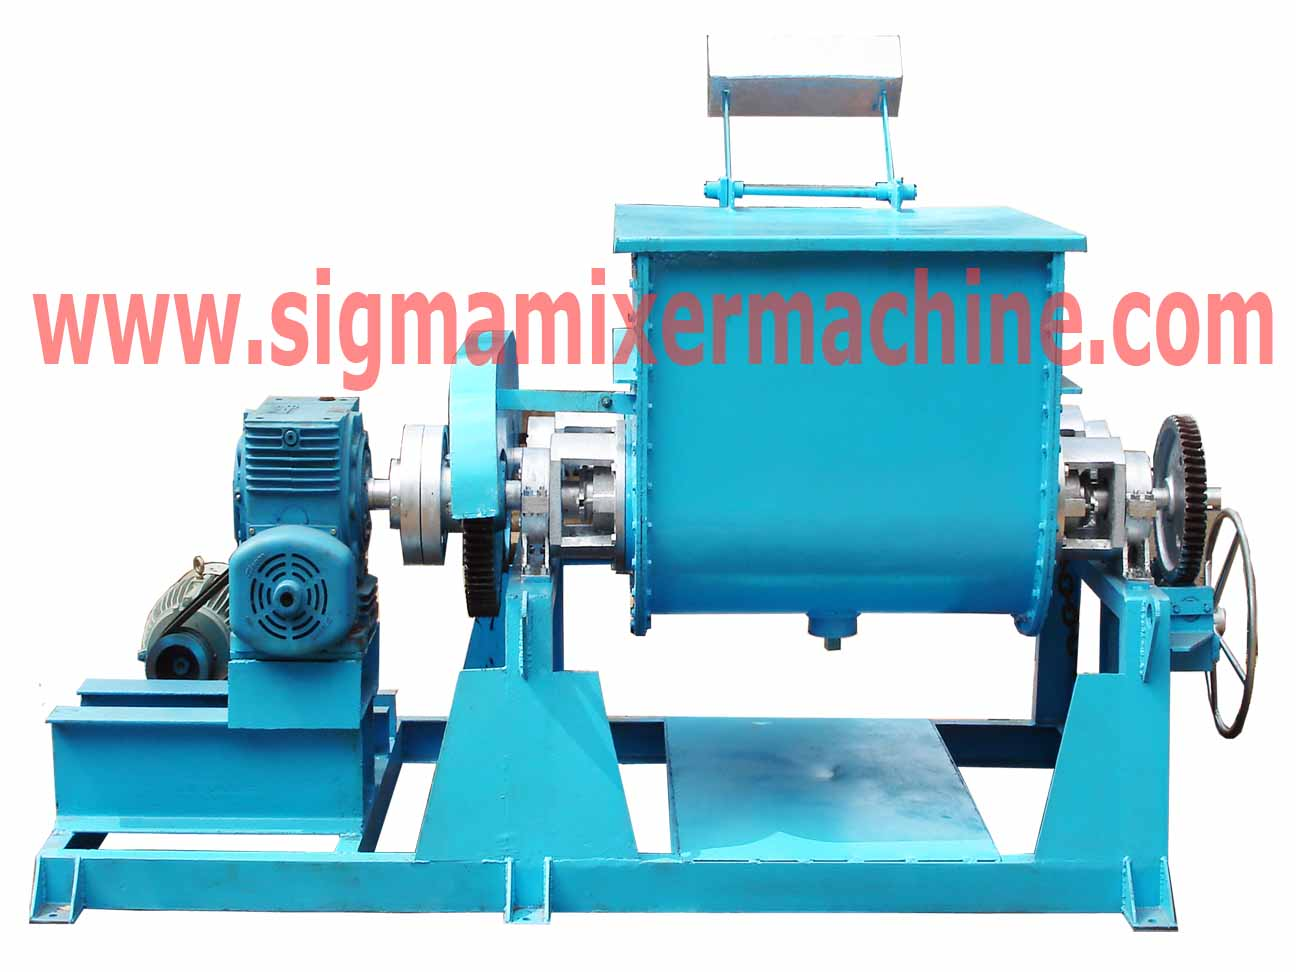 sigma mixer for Pigment paste